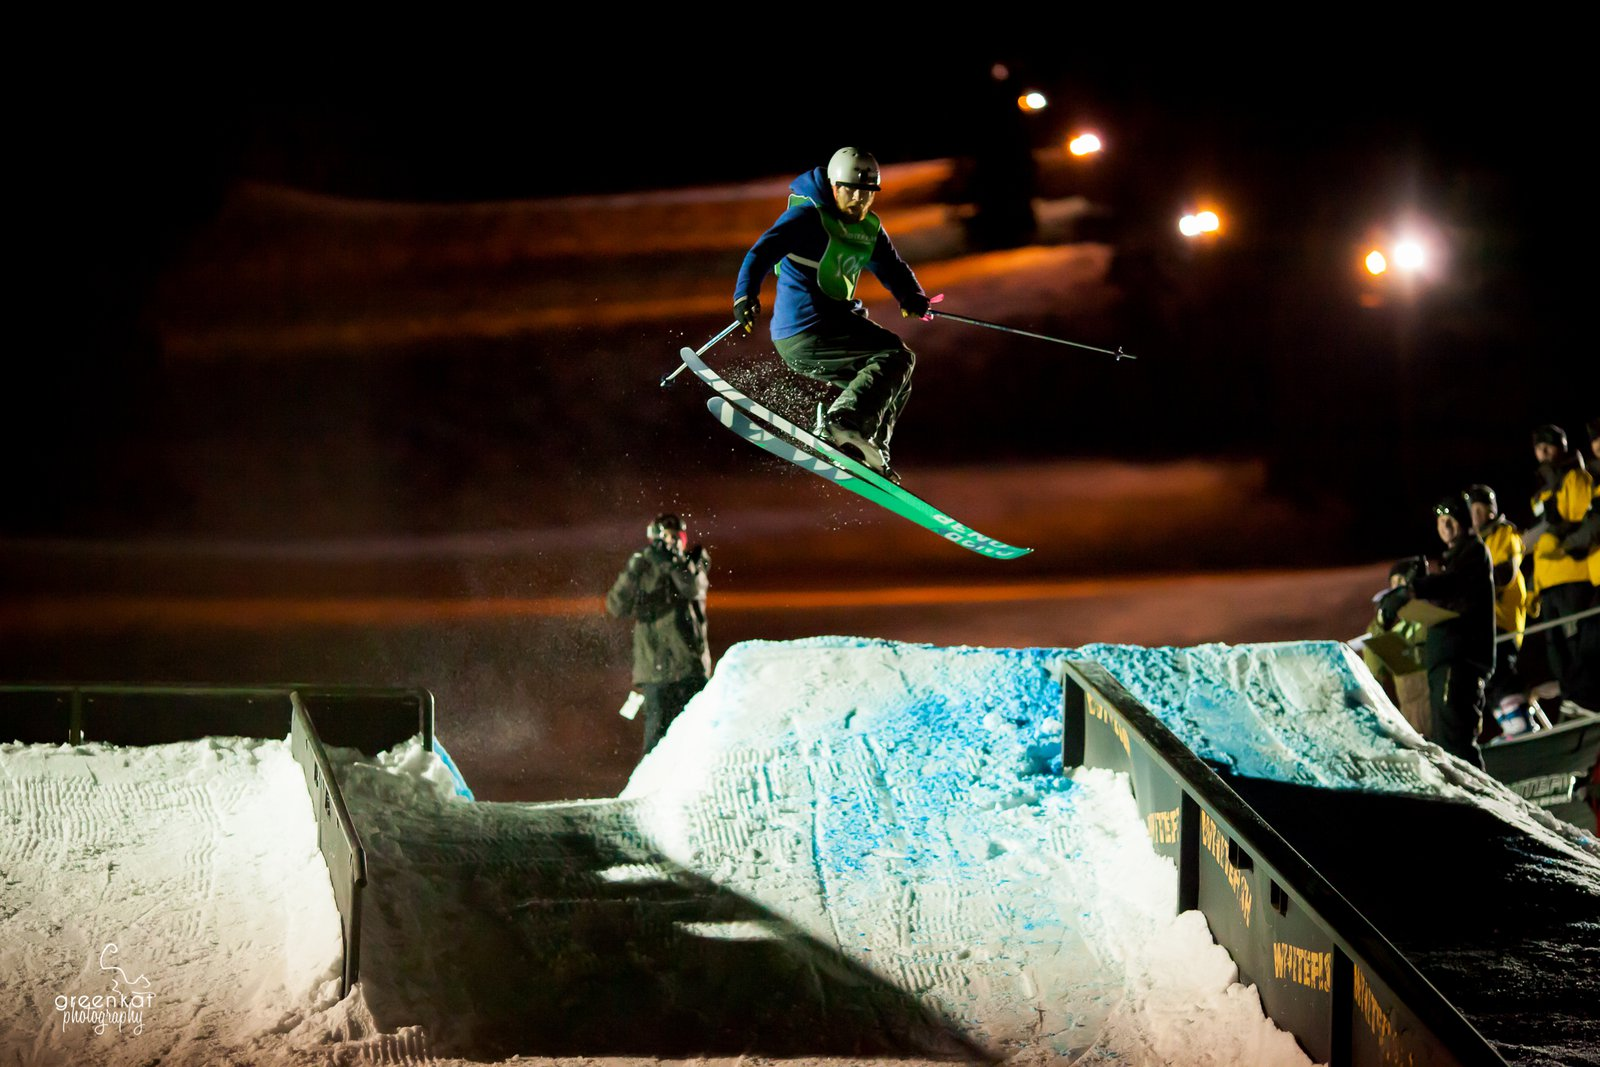 gapping to closeout downrail